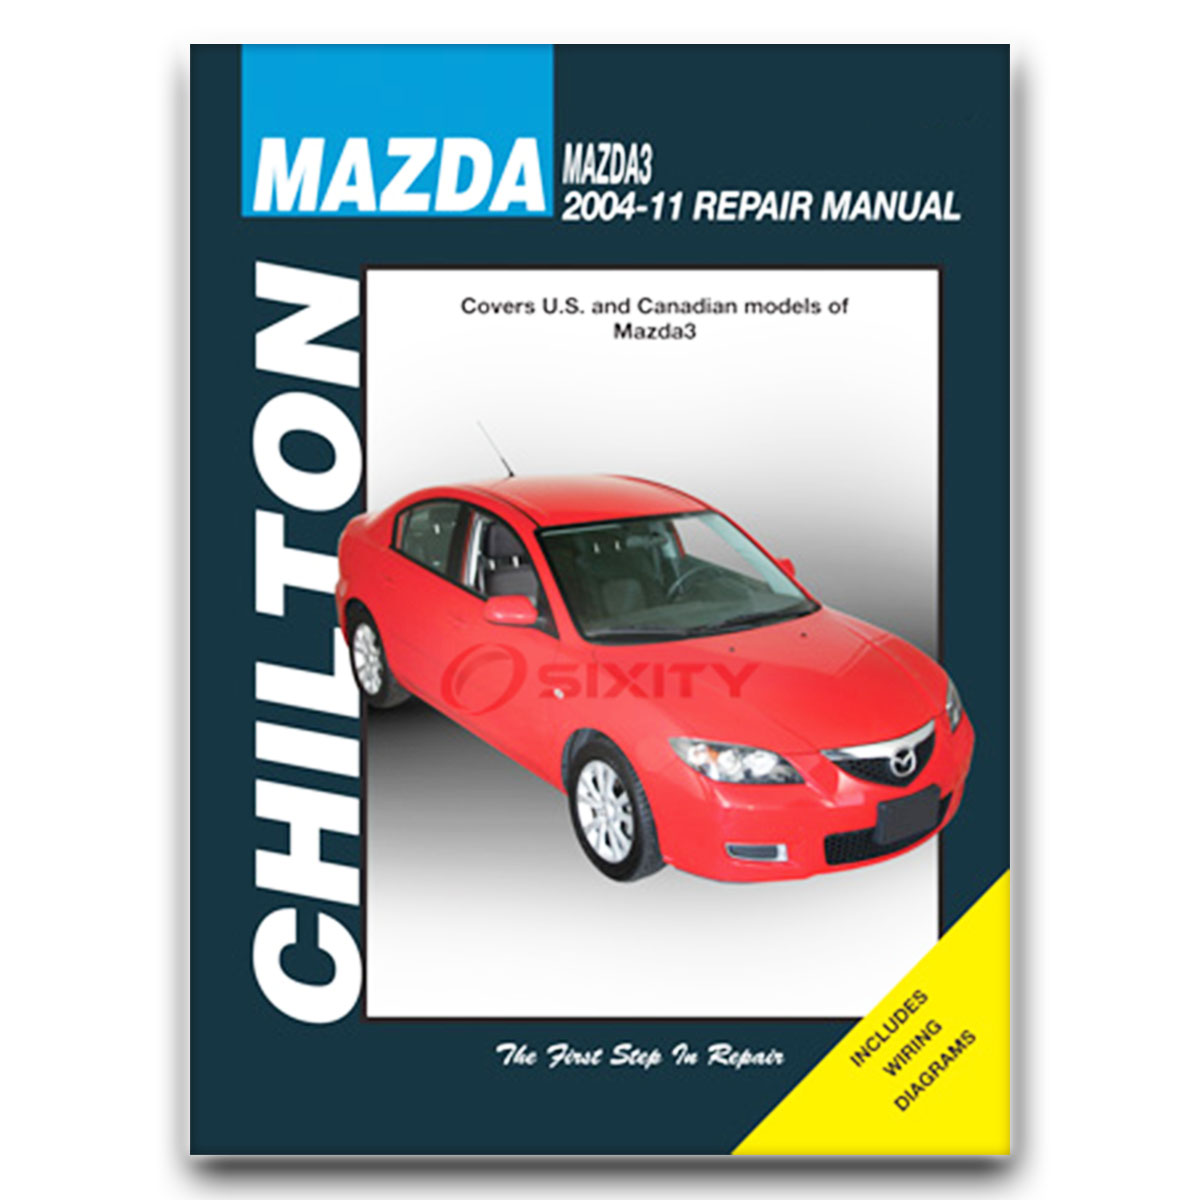 Mazda 3 Chilton Repair Manual S I Mazdaspeed Sp23 Shop Service Rh Ebay Com  2004 Mazda 3 Repair Manual Pdf 2012 Mazda 3